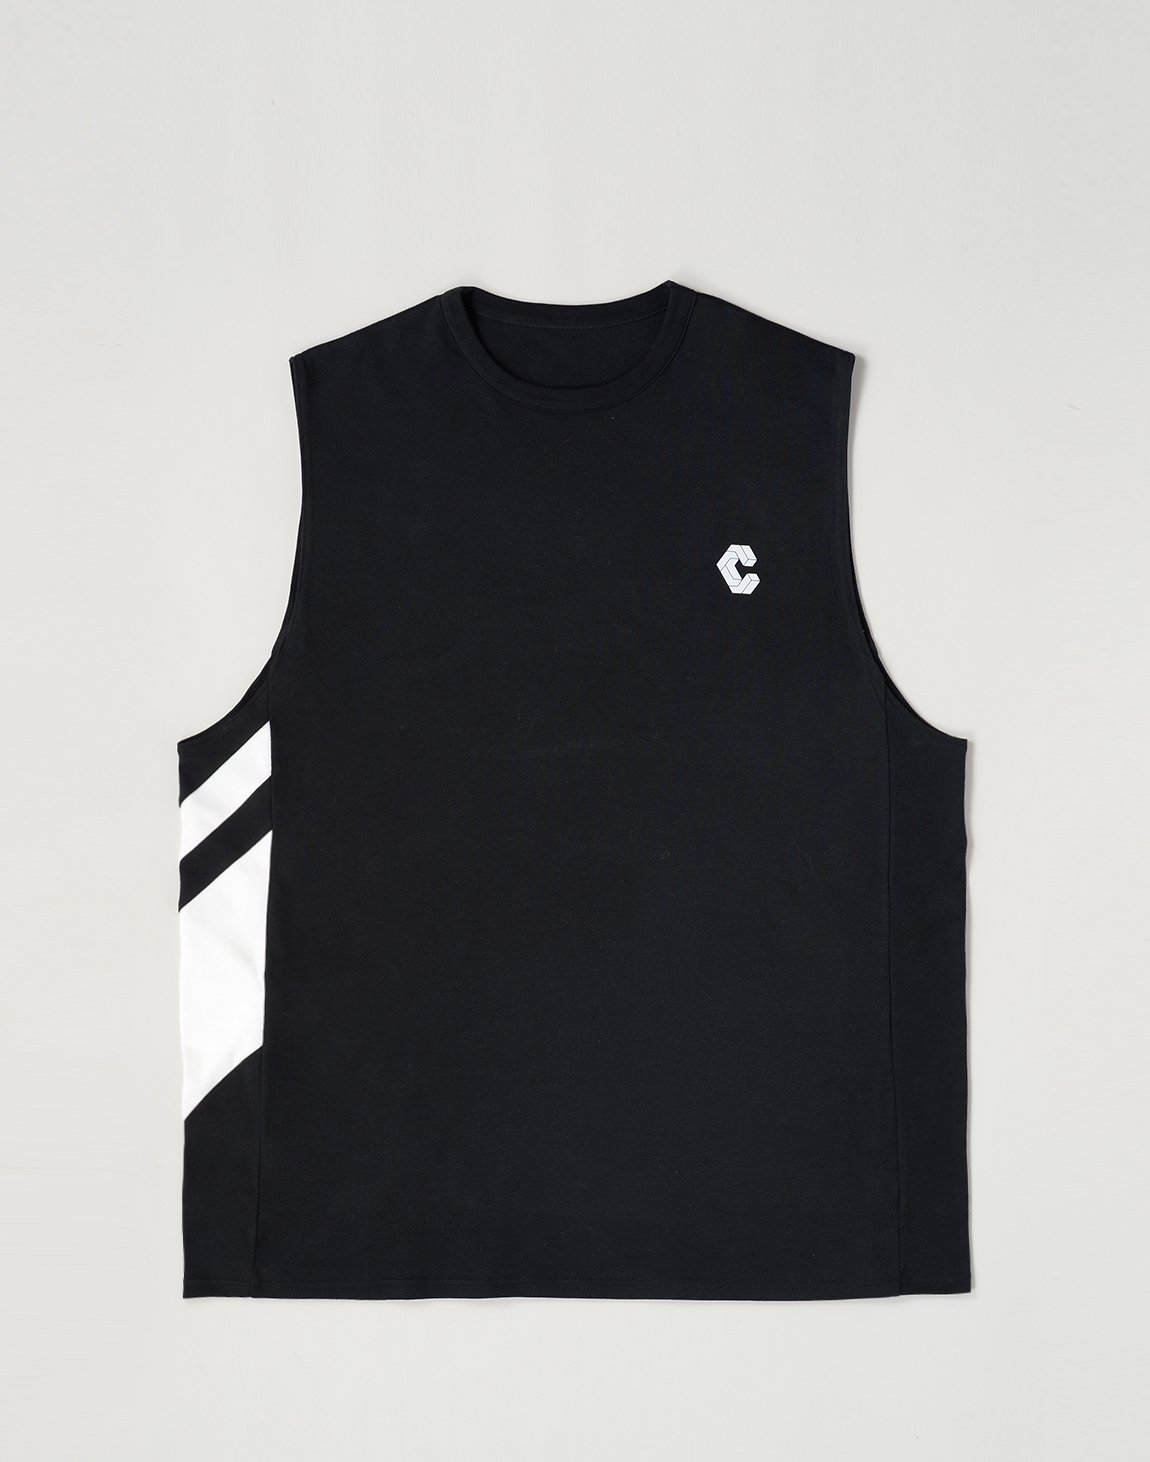 <img class='new_mark_img1' src='https://img.shop-pro.jp/img/new/icons55.gif' style='border:none;display:inline;margin:0px;padding:0px;width:auto;' />CRONOS SLANTED LINE TANKTOP【BLACK】